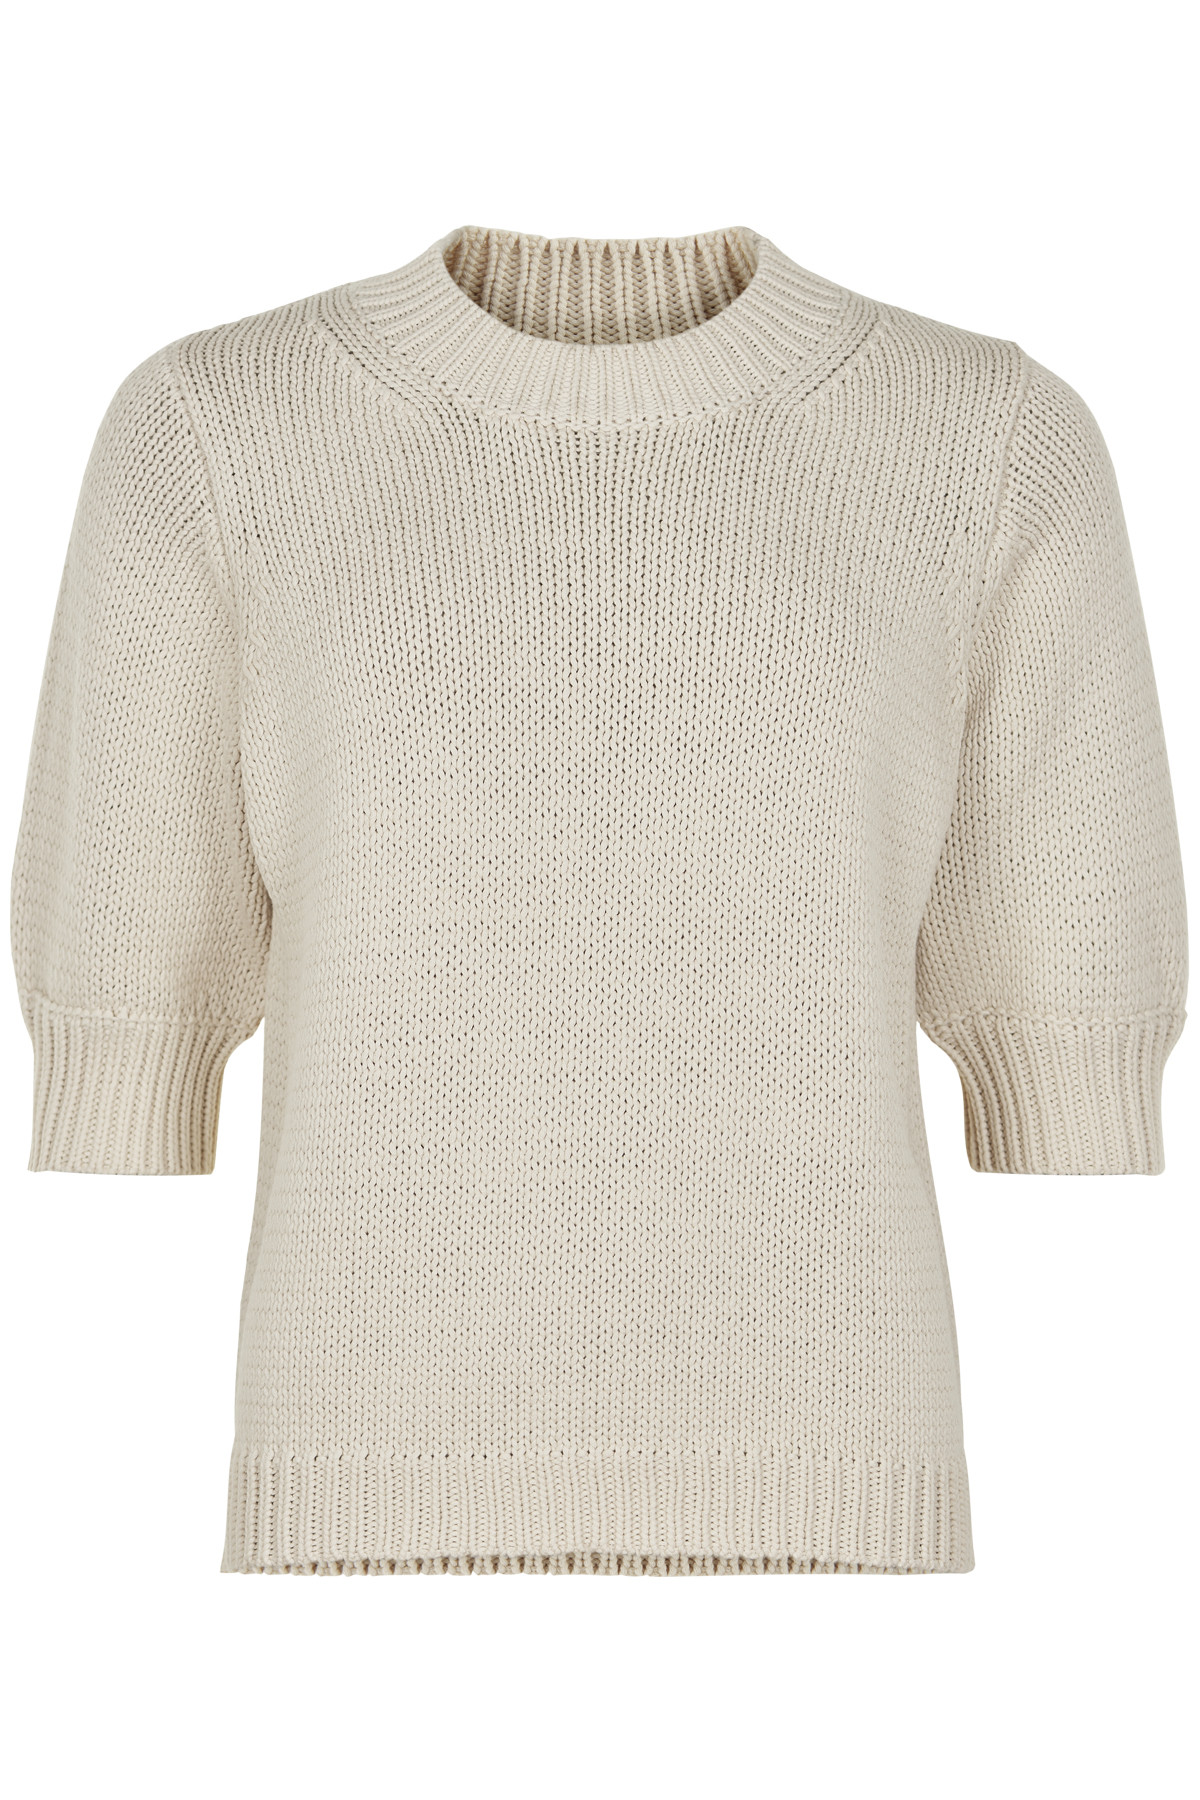 Image of   AND LESS ALBENA PULLOVER 5220205 9504 (Birch, XL)